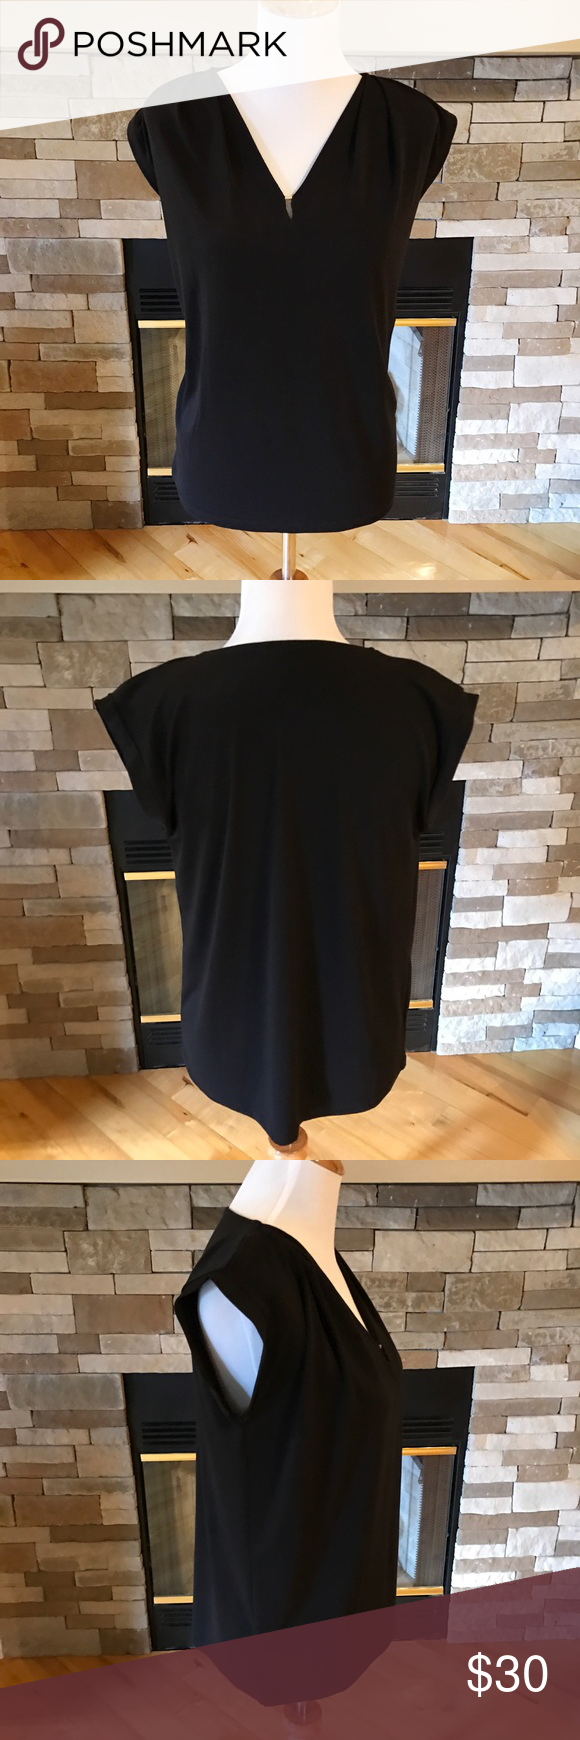 Ann Taylor Black Cap Sleeve Top Dressy Ann Taylor black cap sleeve top with gold accent piece at the neckline.  In very good condition, only worn a couple of times. Size small, 96% Polyester, 4% Spandex. Ann Taylor Tops Blouses